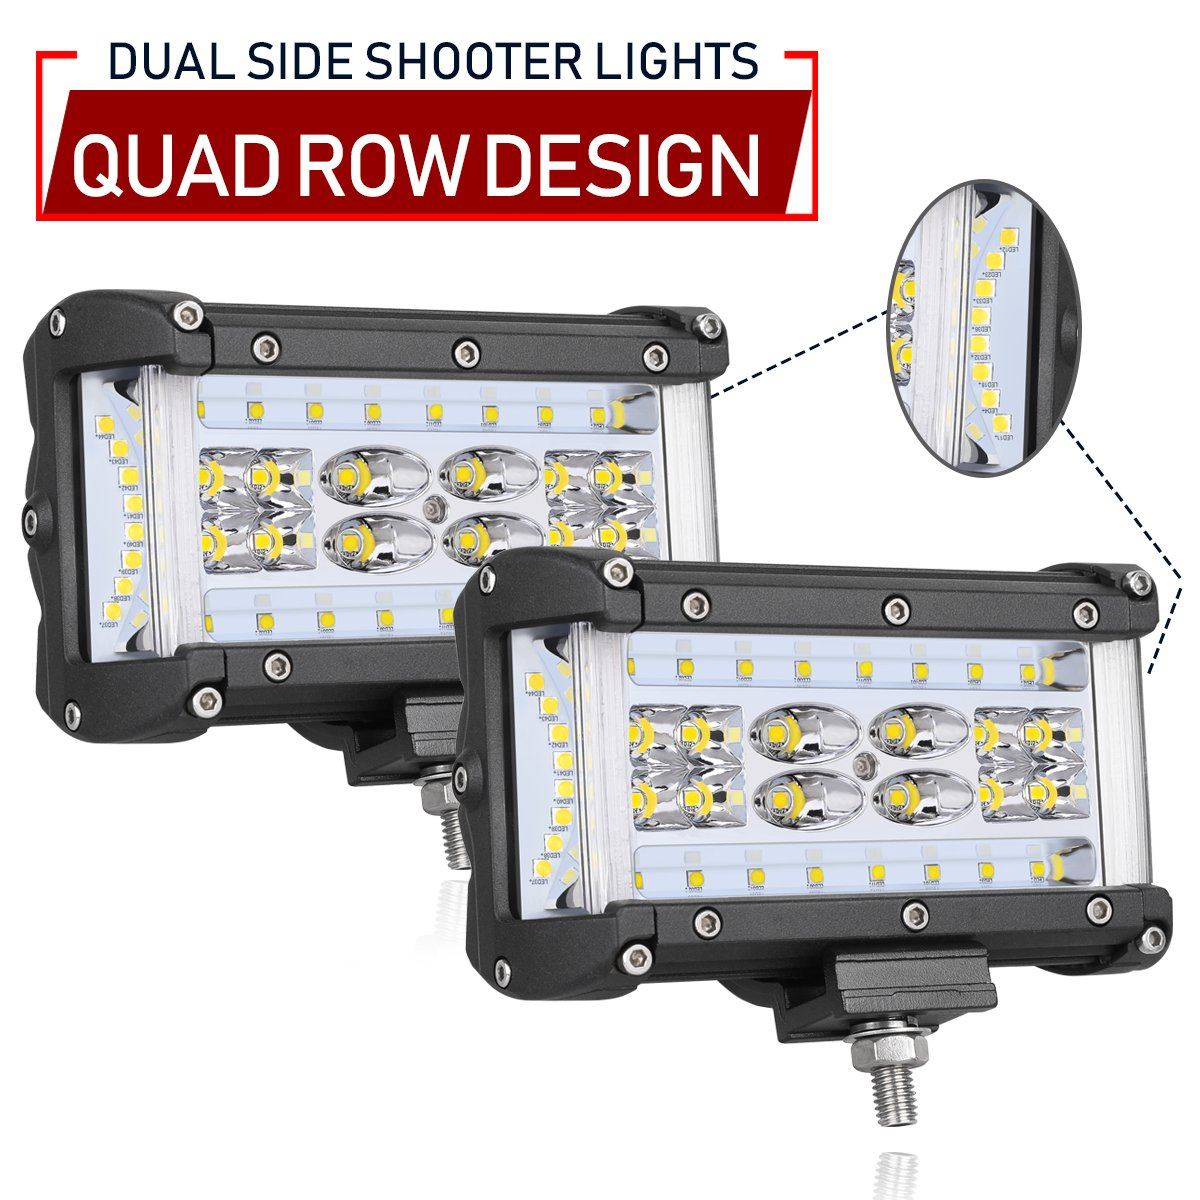 Dual Side Shooter LED Lights, Swatow Industries 2PCS 220W Osram LED Pod Lights Quad Row LED Fog Lights Off Road LED Cube Lights for Truck Pickup Tractor Motorcycle SUV ATV UTV Boat - 3 Years Warranty